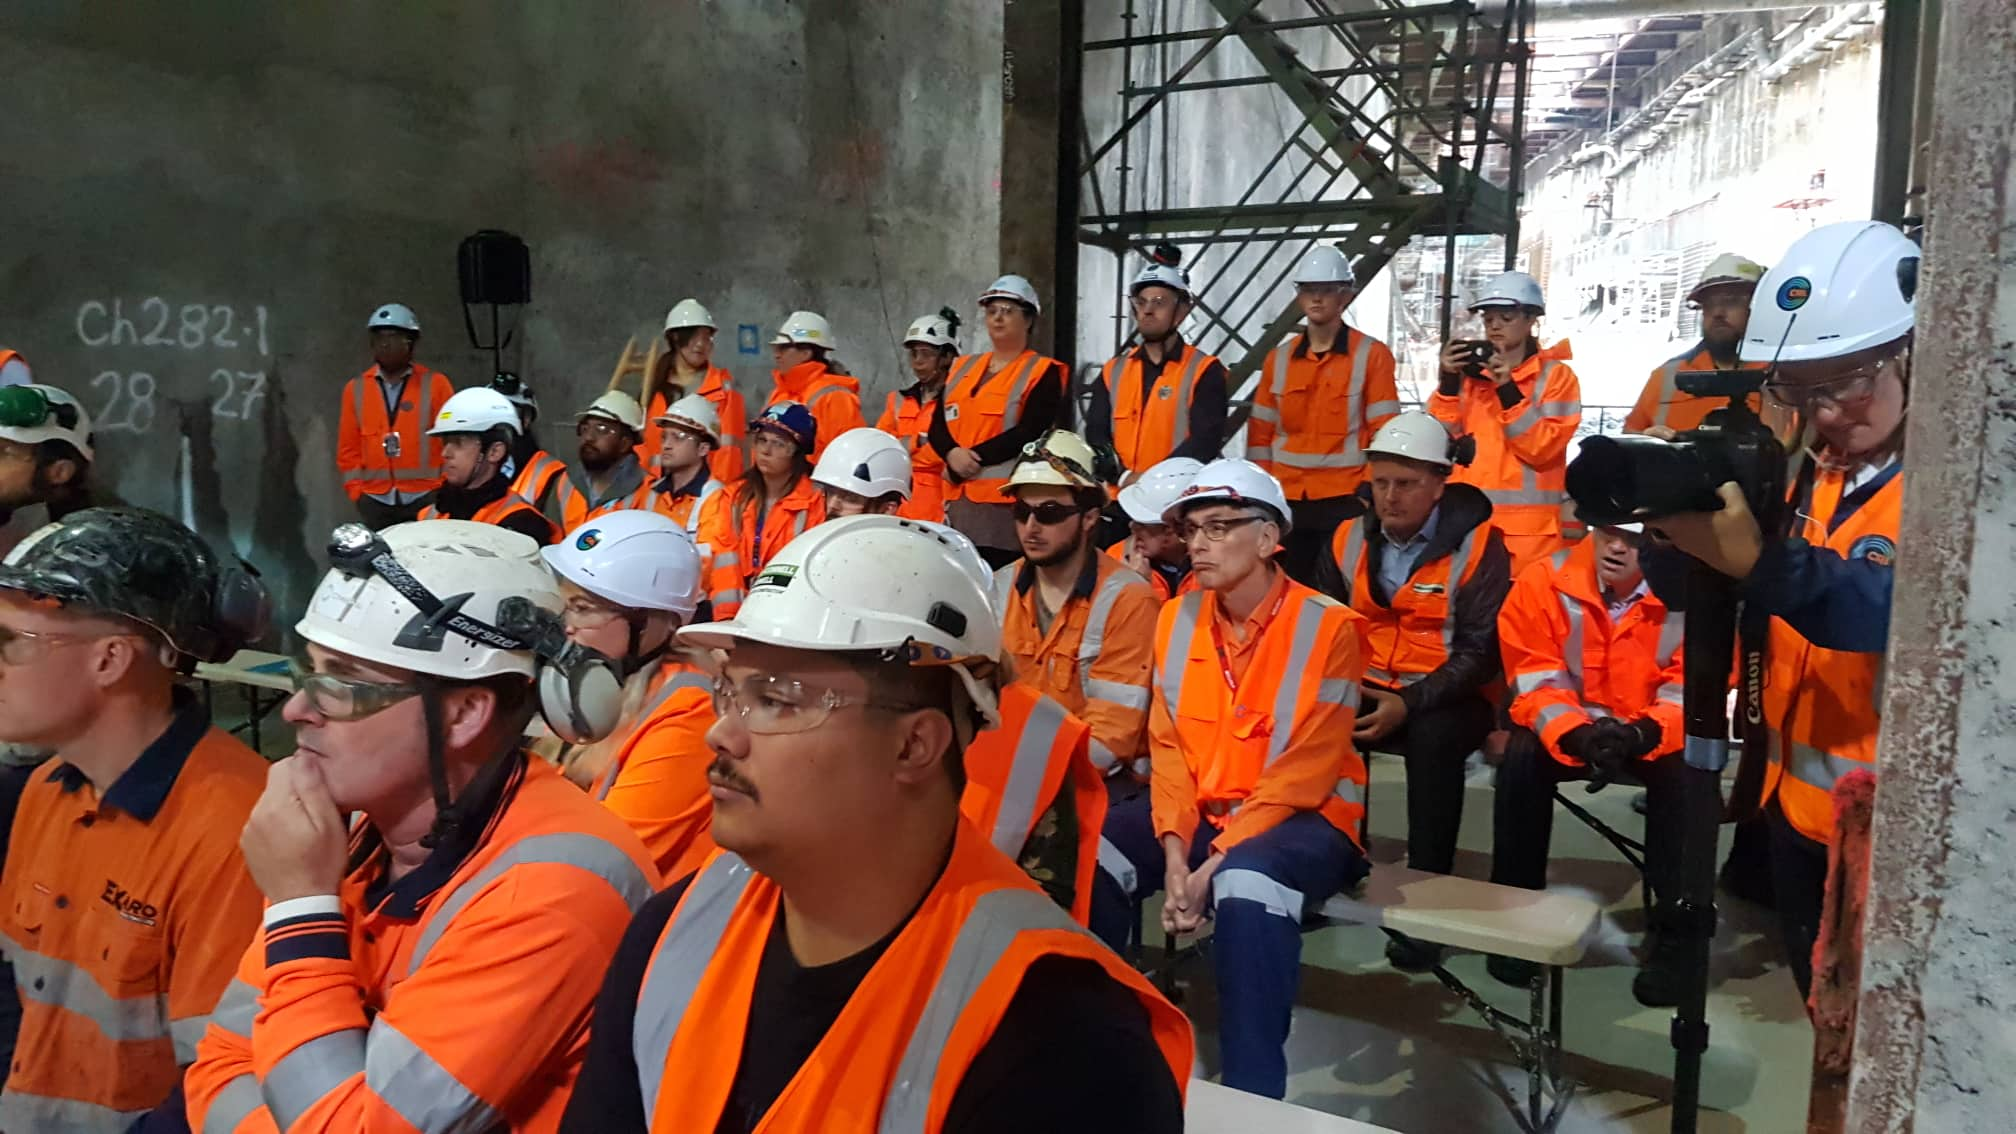 Celebrating a major milestone  with the breakthrough to the Commercial Bay development site from the Albert Street trench tunnels. Those working on the project at the ceremony. December 6 2018